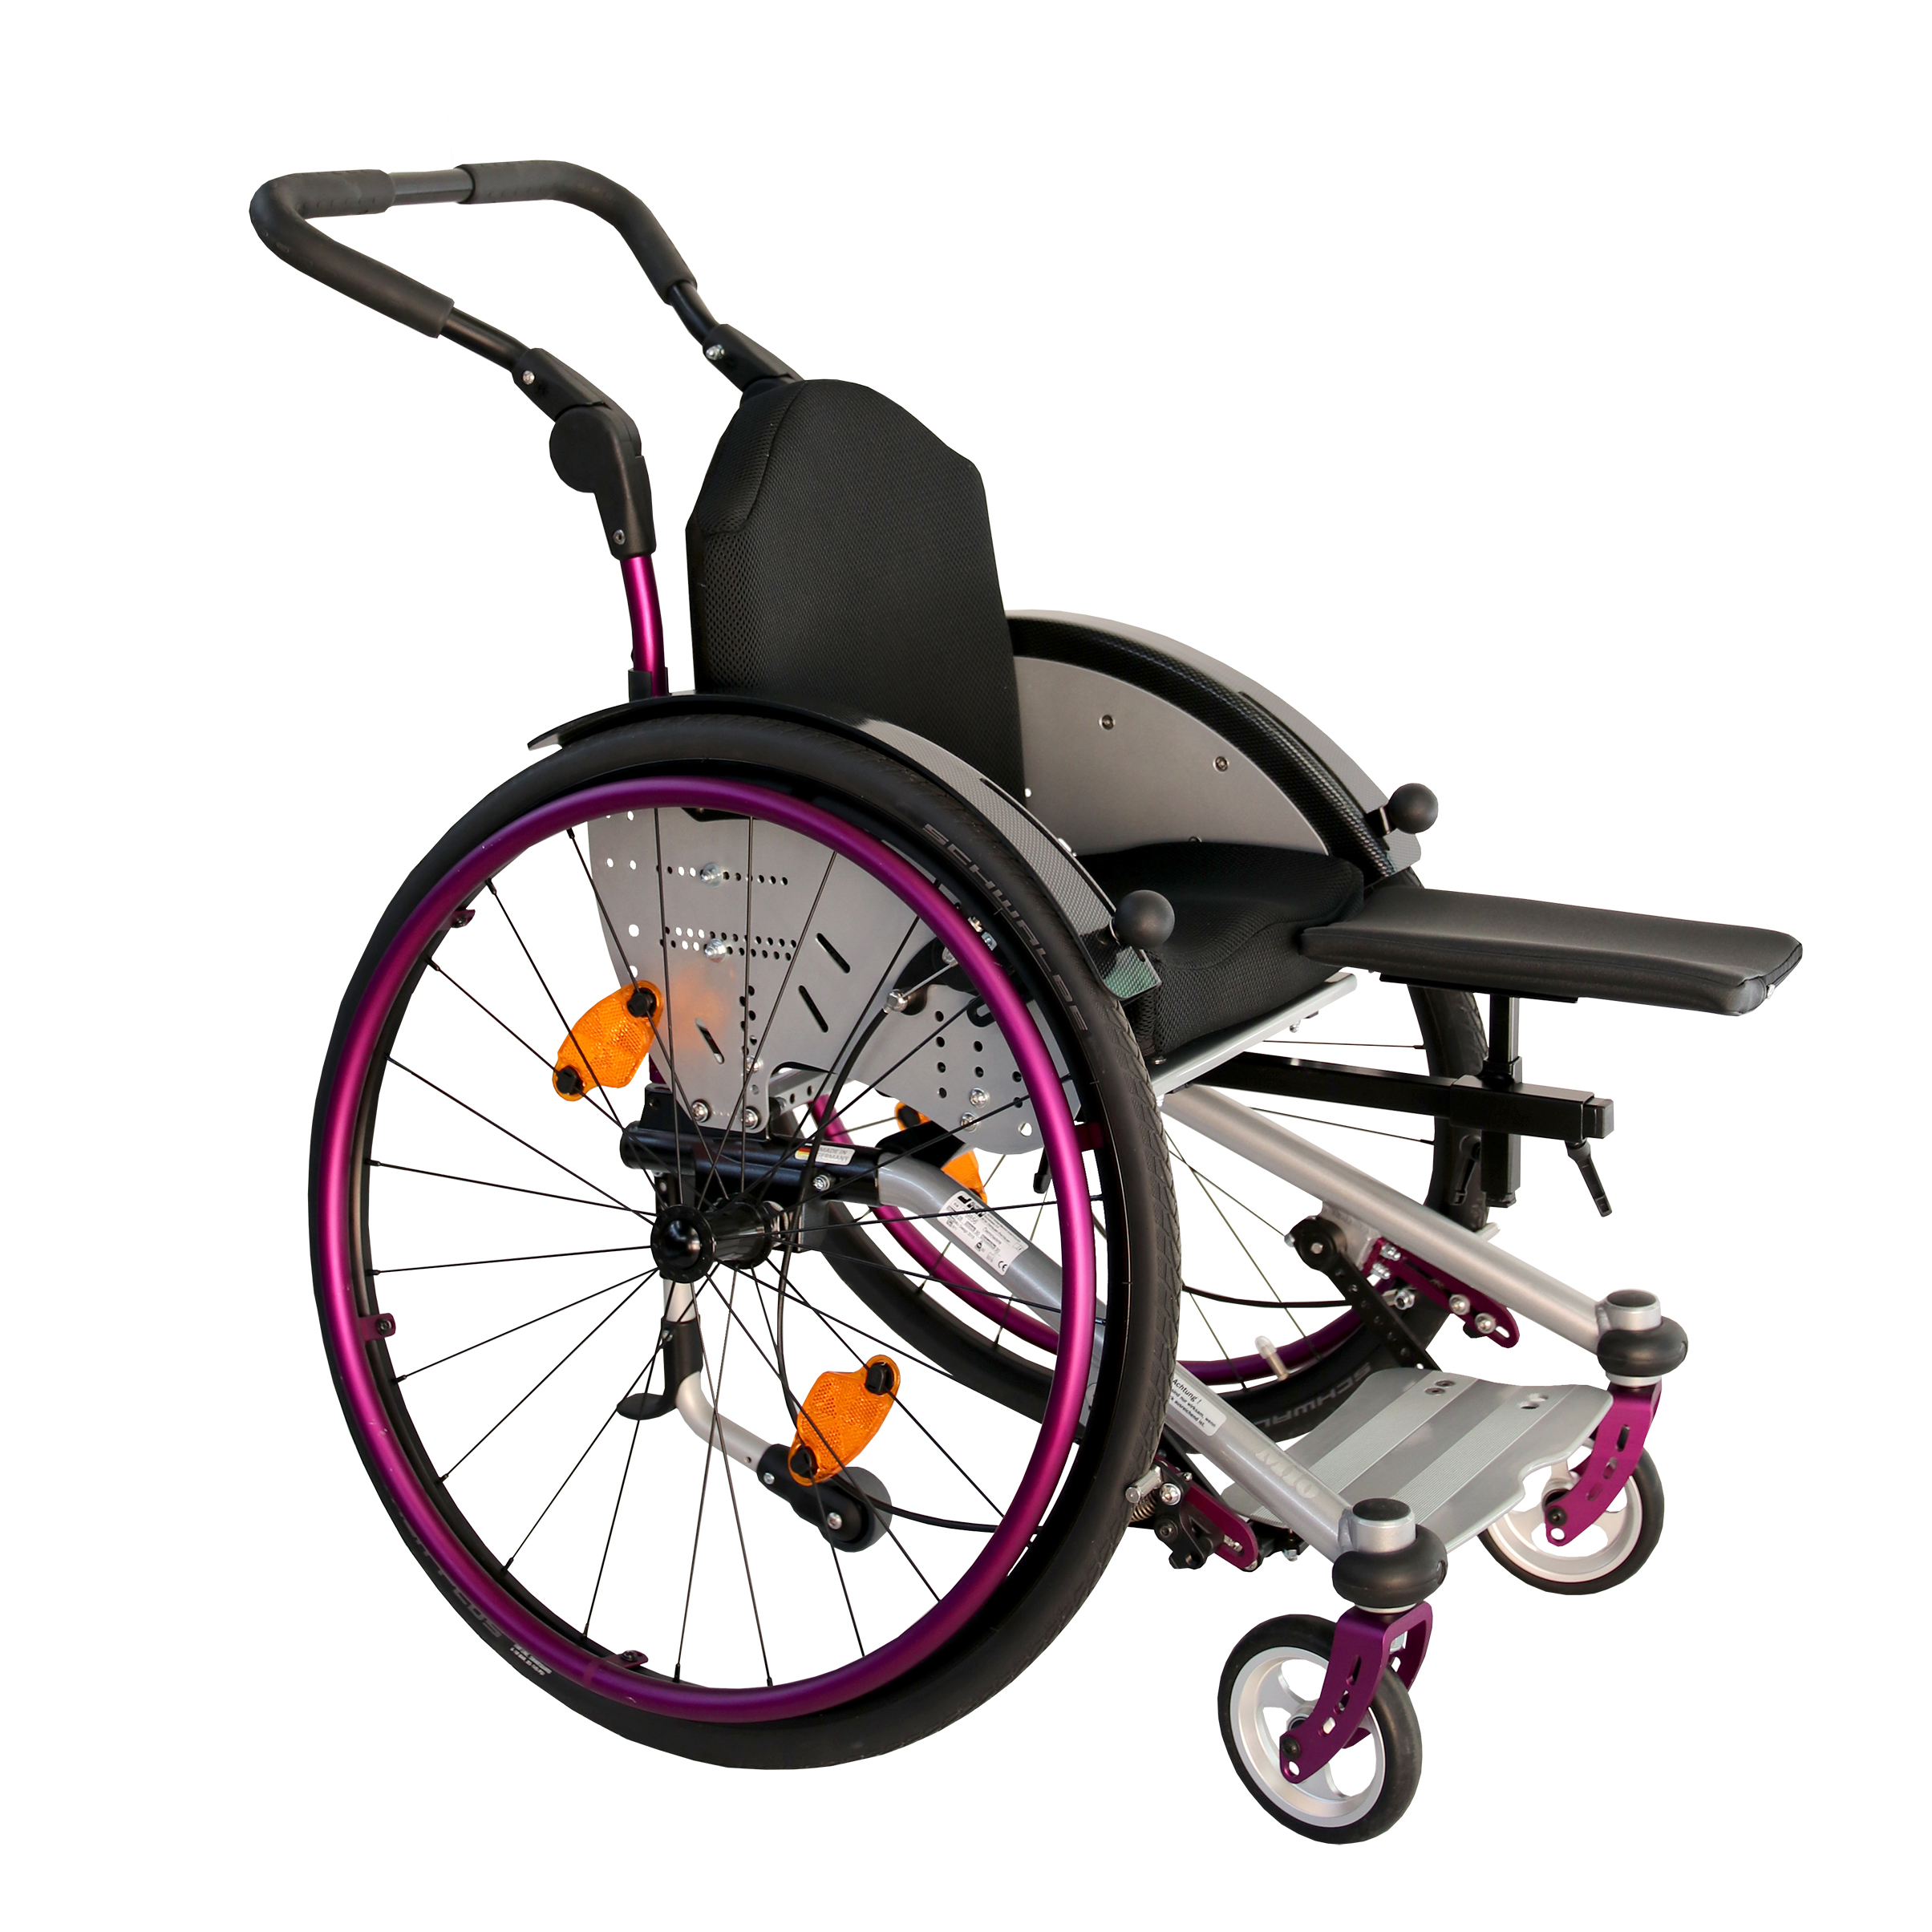 Wheelchair with support for leg